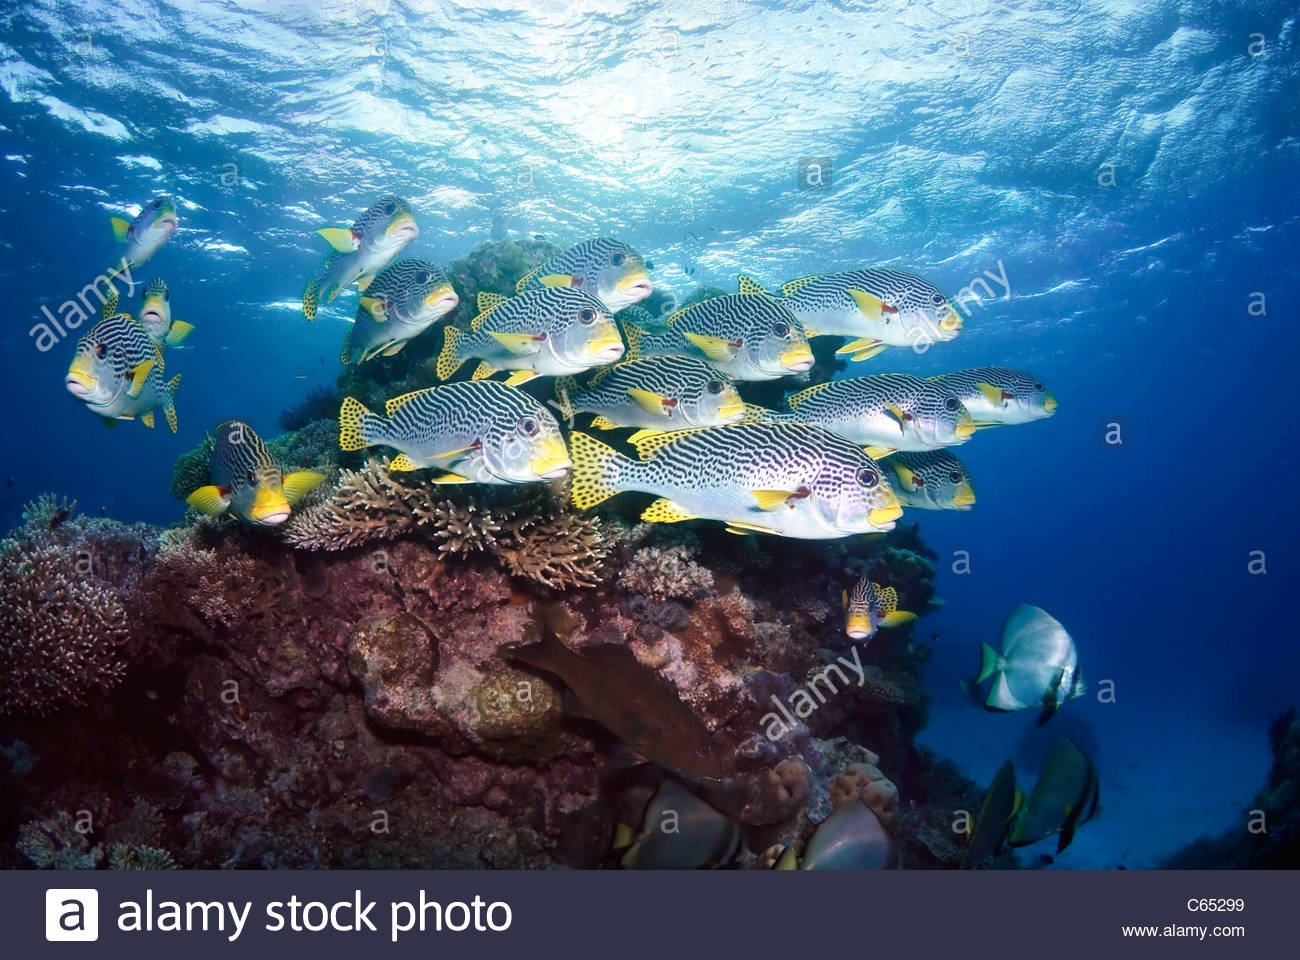 Great Barrier Reef Fish - Species, Pictures, Information &amp- more